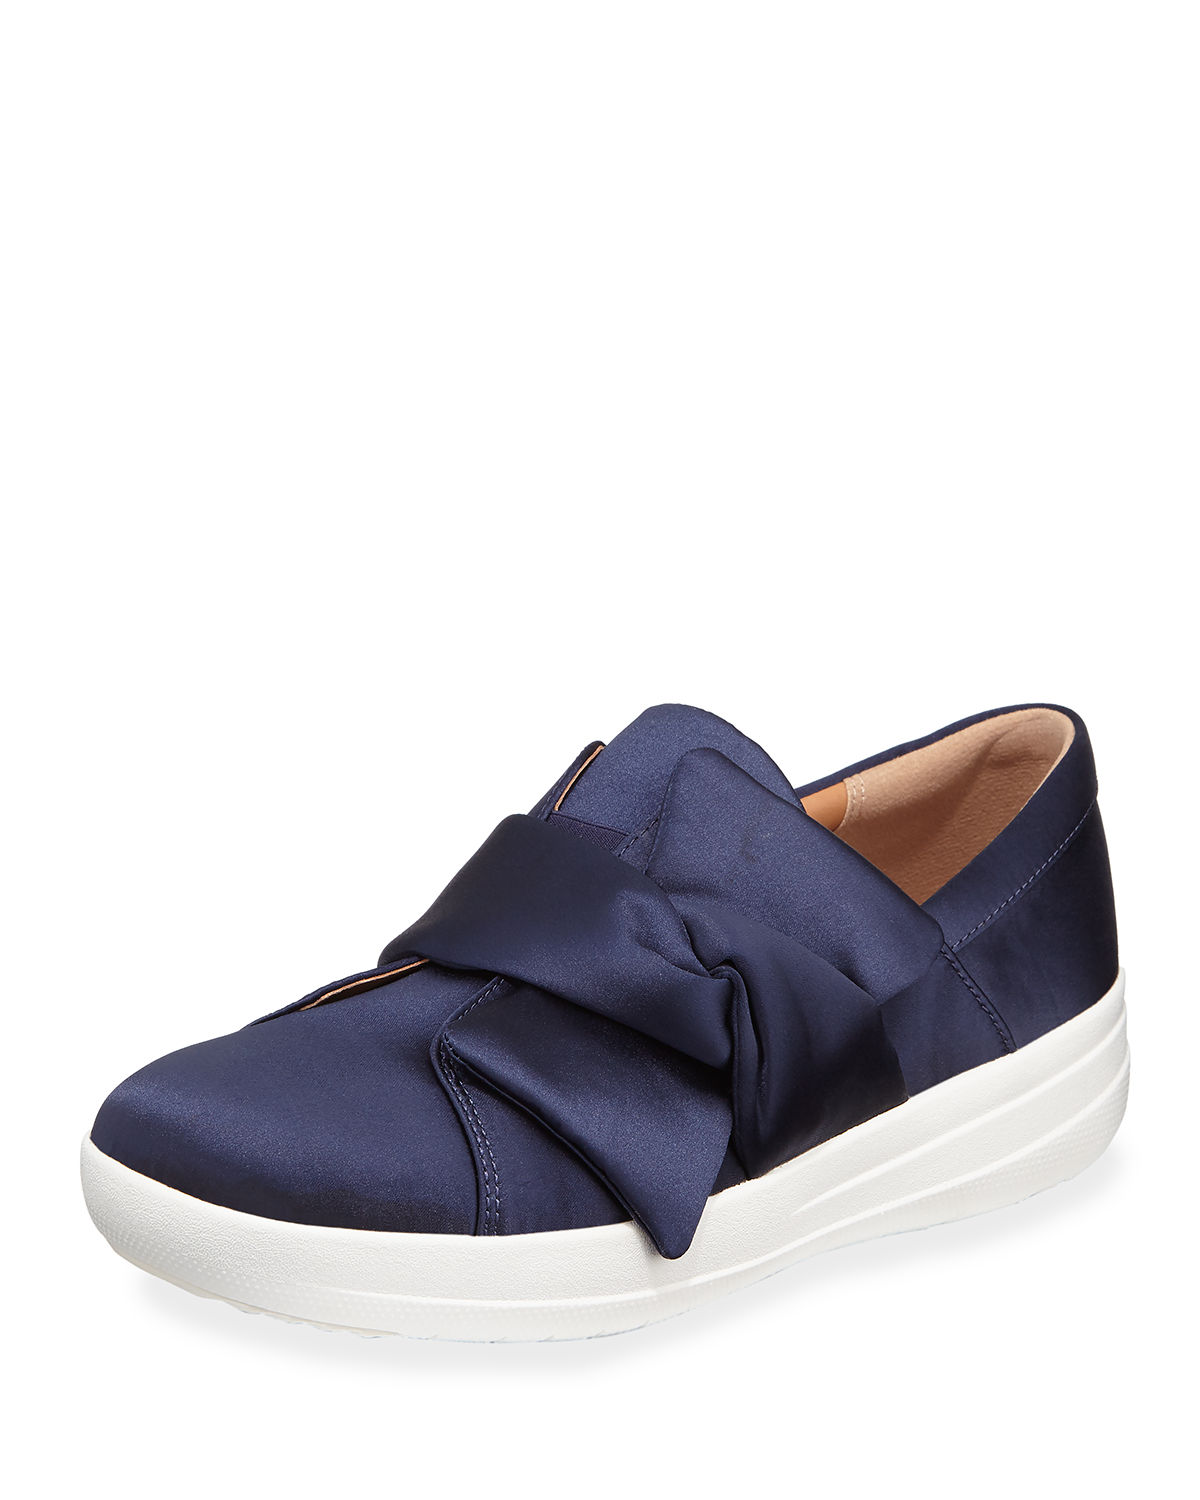 F-Sporty II Bowy Satin Sneakers